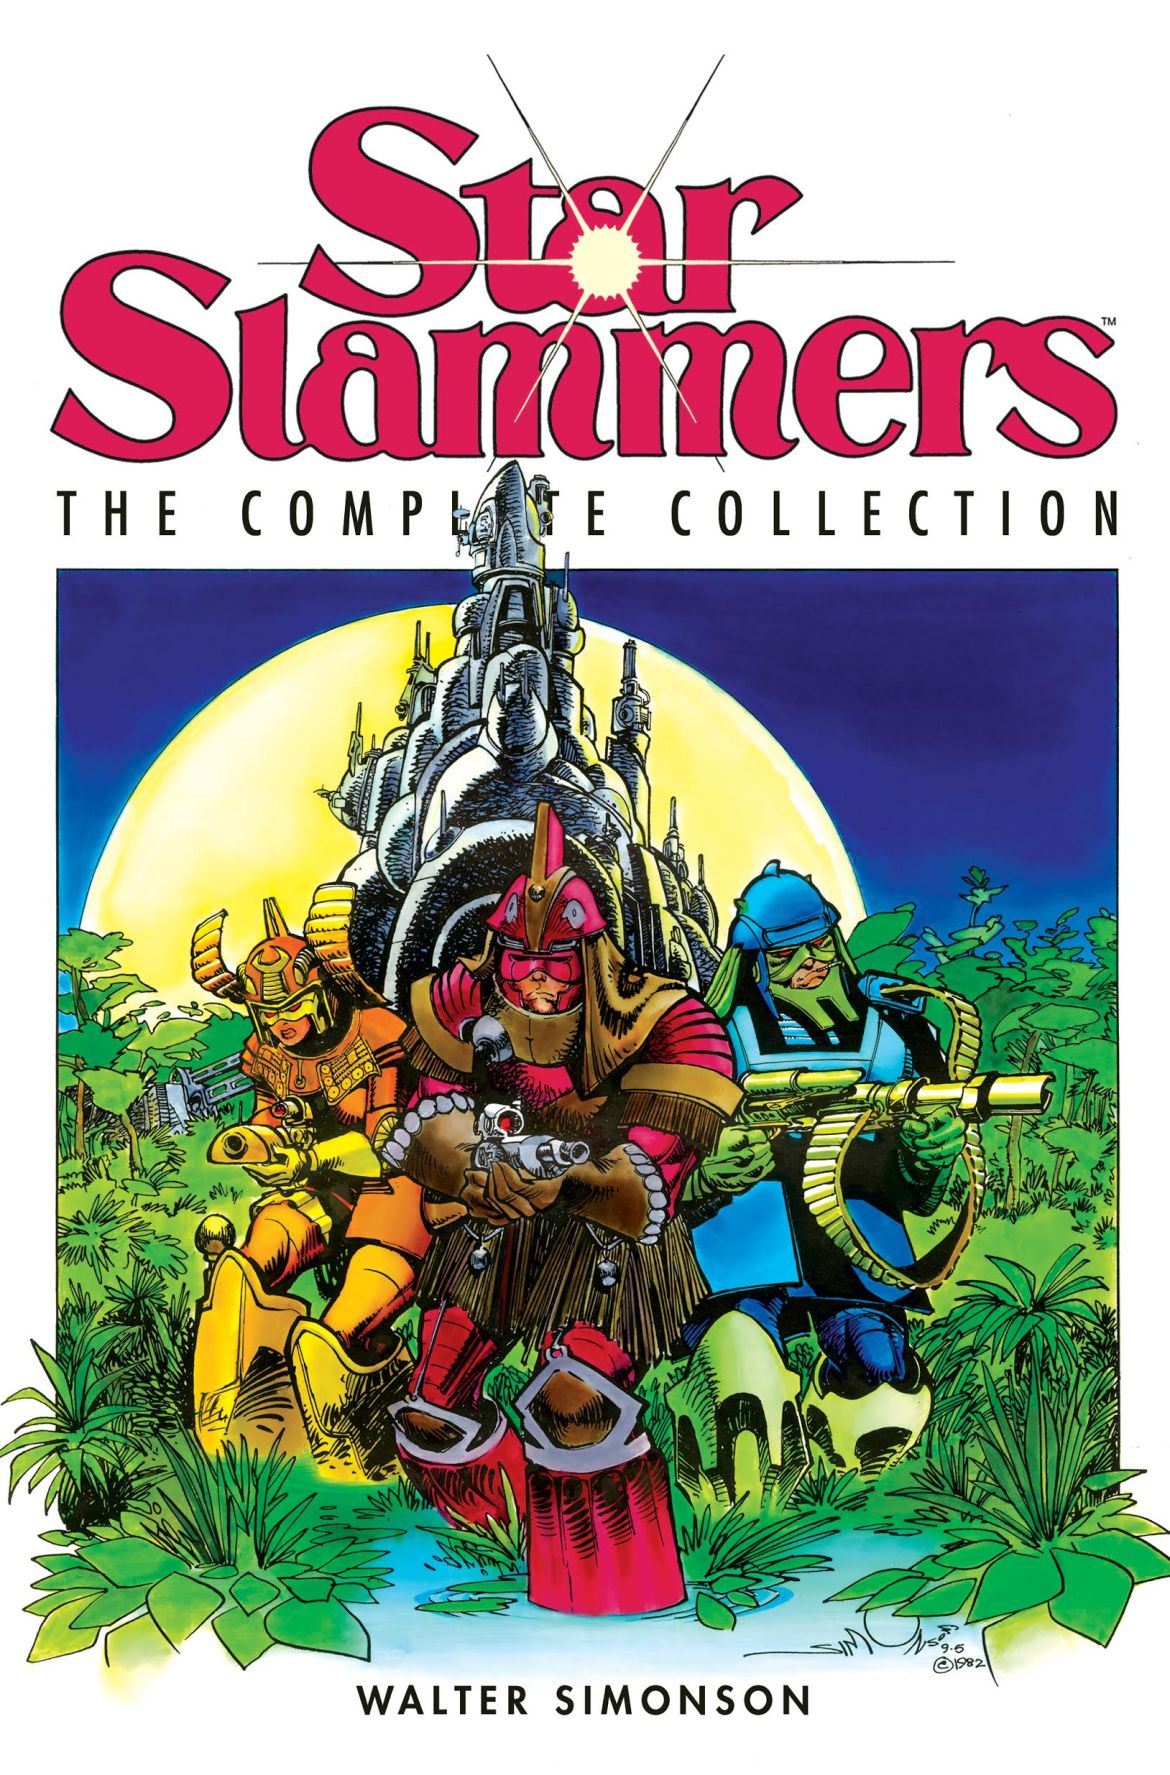 919434c3-9a31-41e4-ab0e-54f206c81022 Walter Simonson's STAR SLAMMERS captures a complete collection